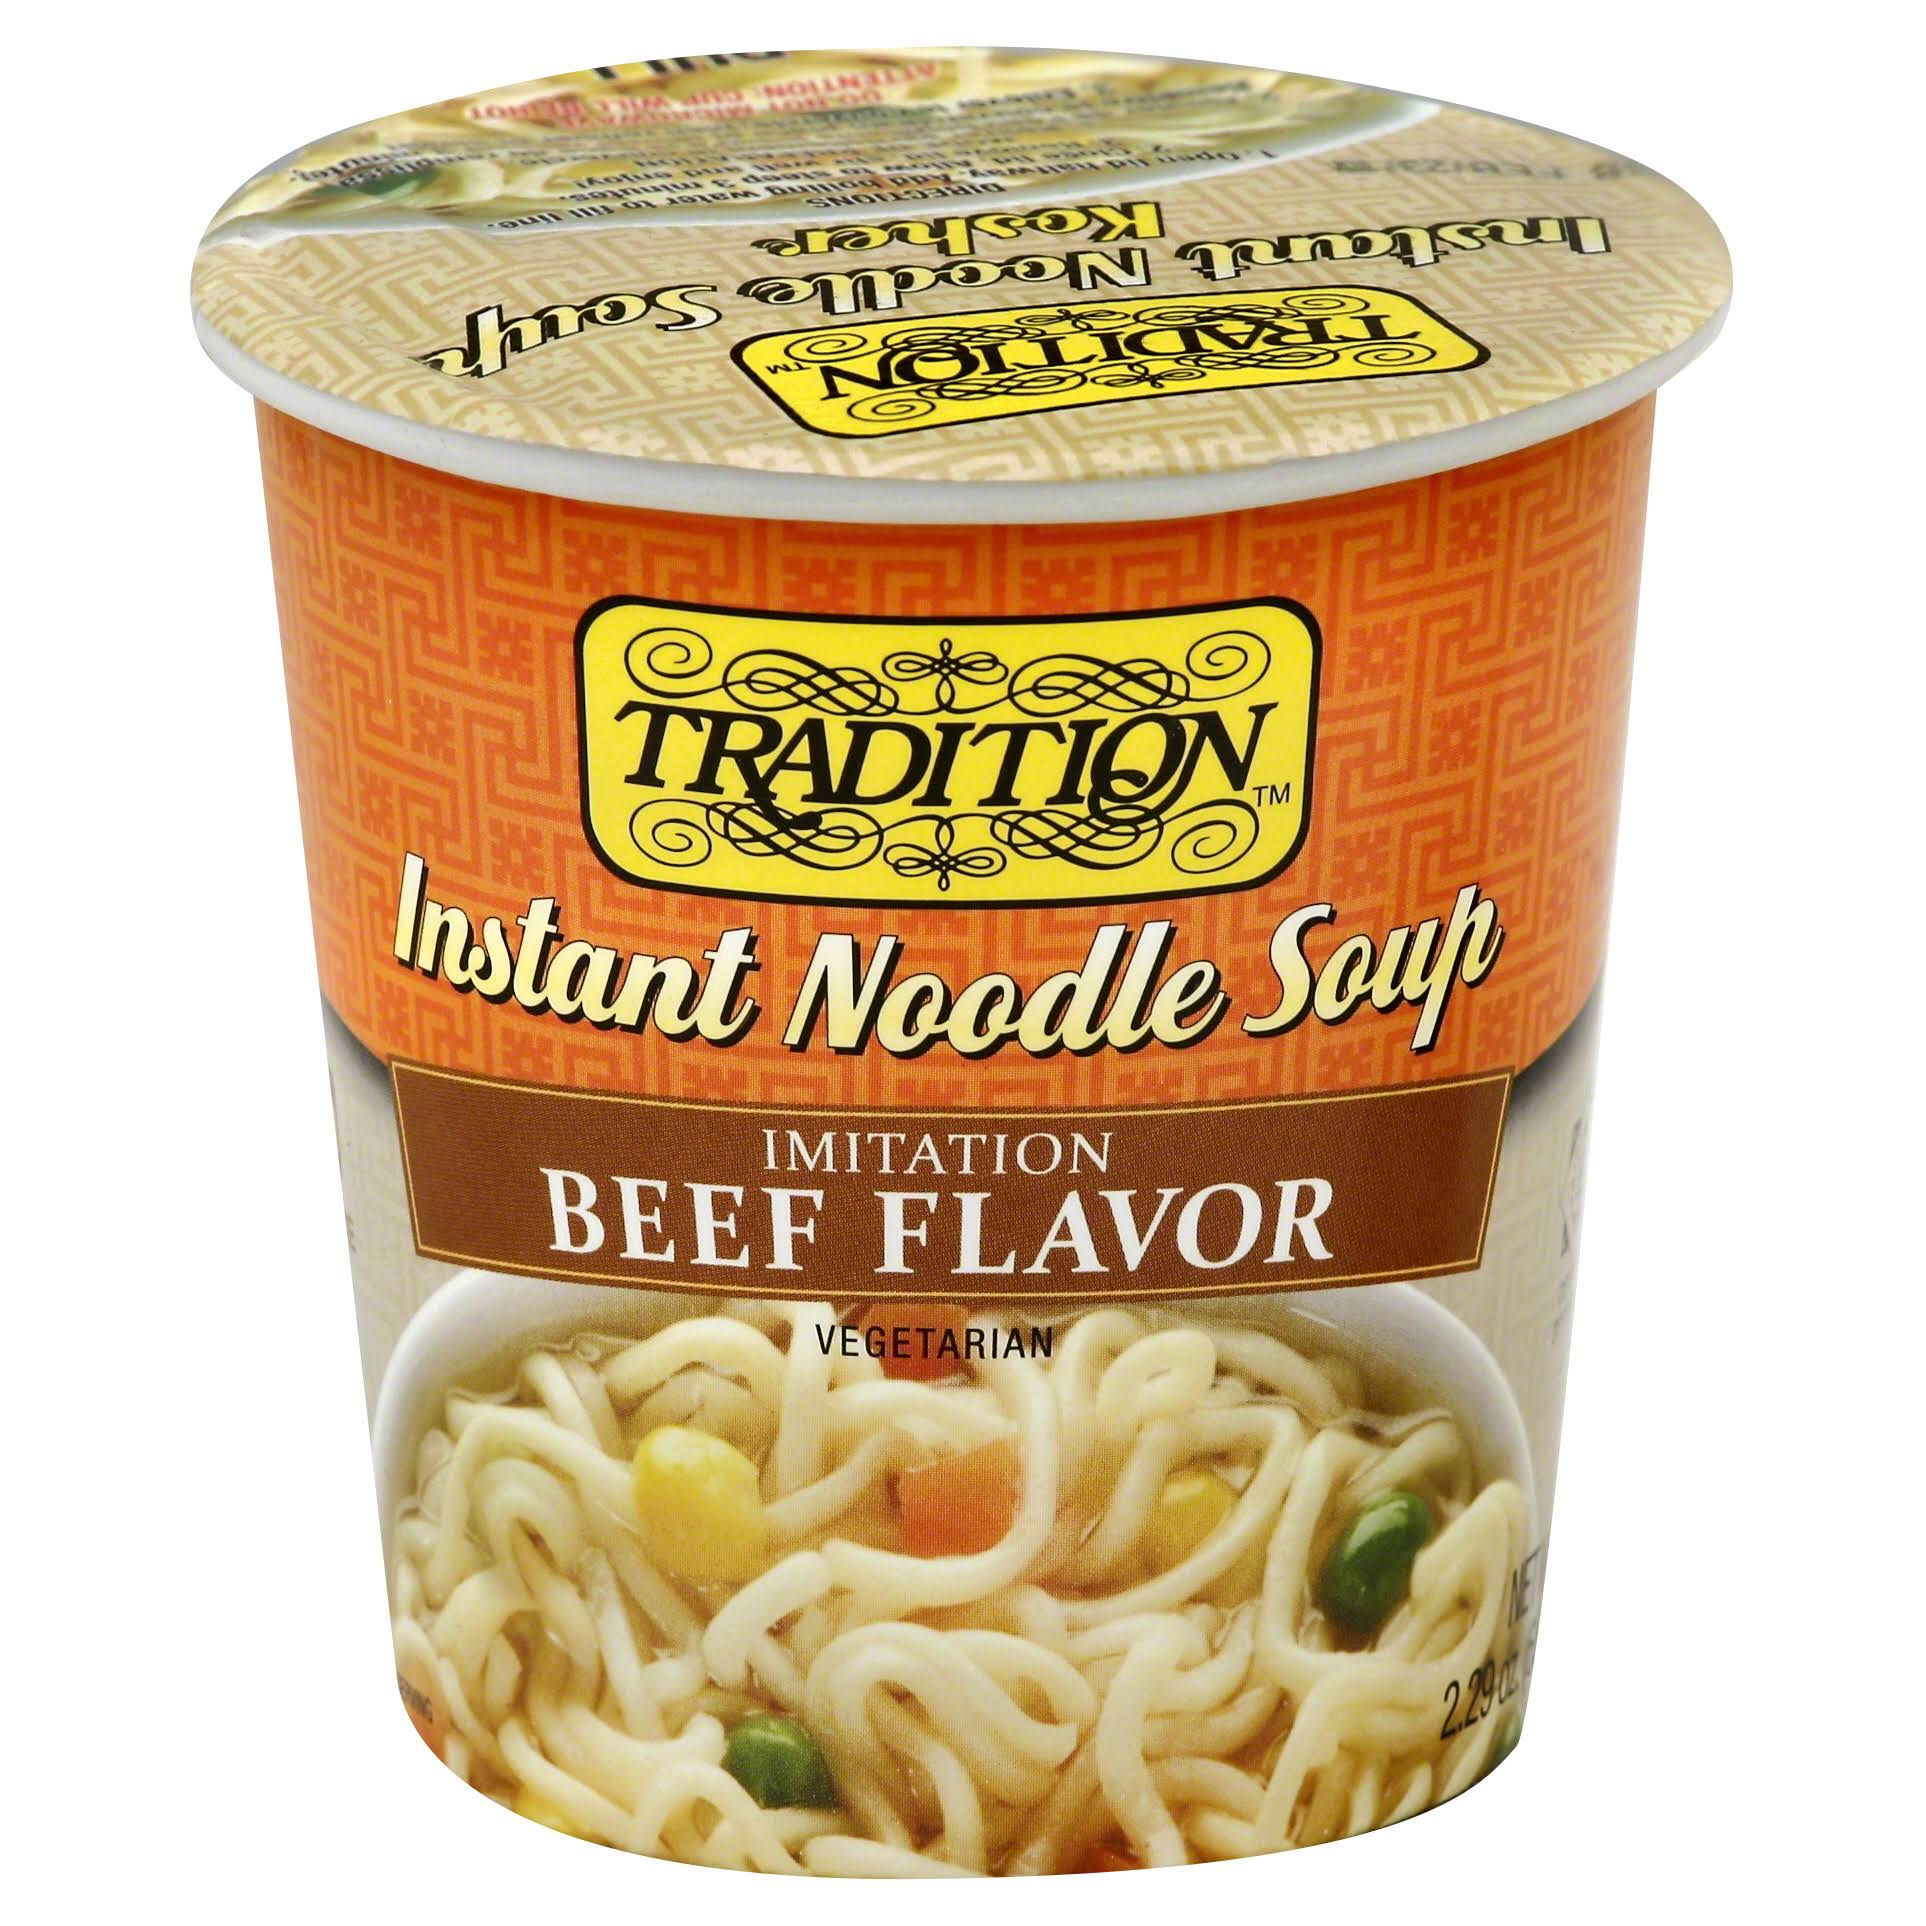 Tradition Instant Noodle Soup - Beef Flavor, 2.47oz